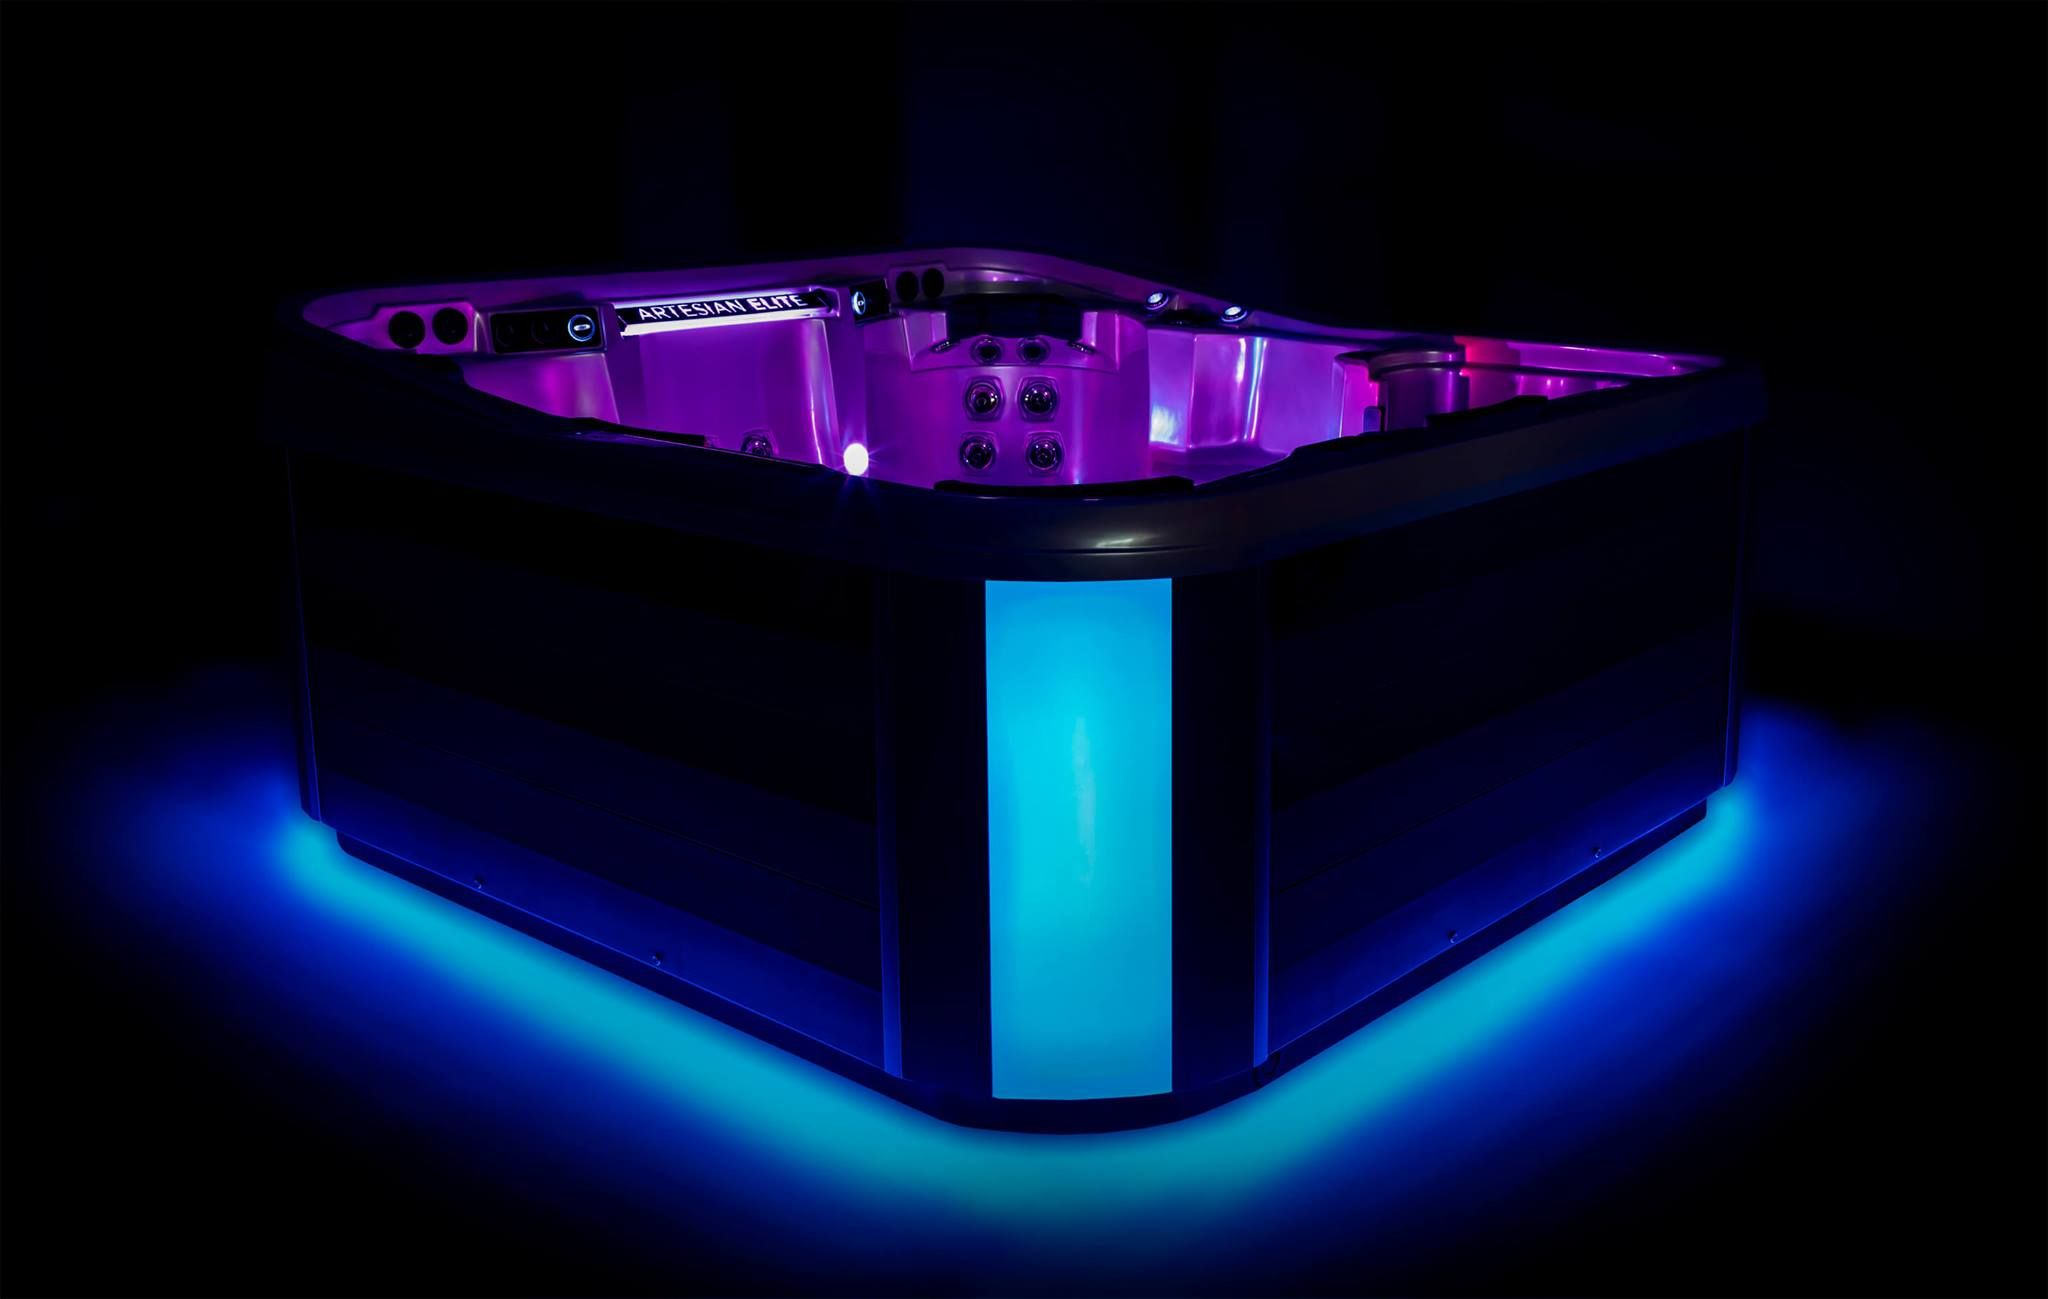 Led Lighting Features With Images Led Pool Lighting Tub